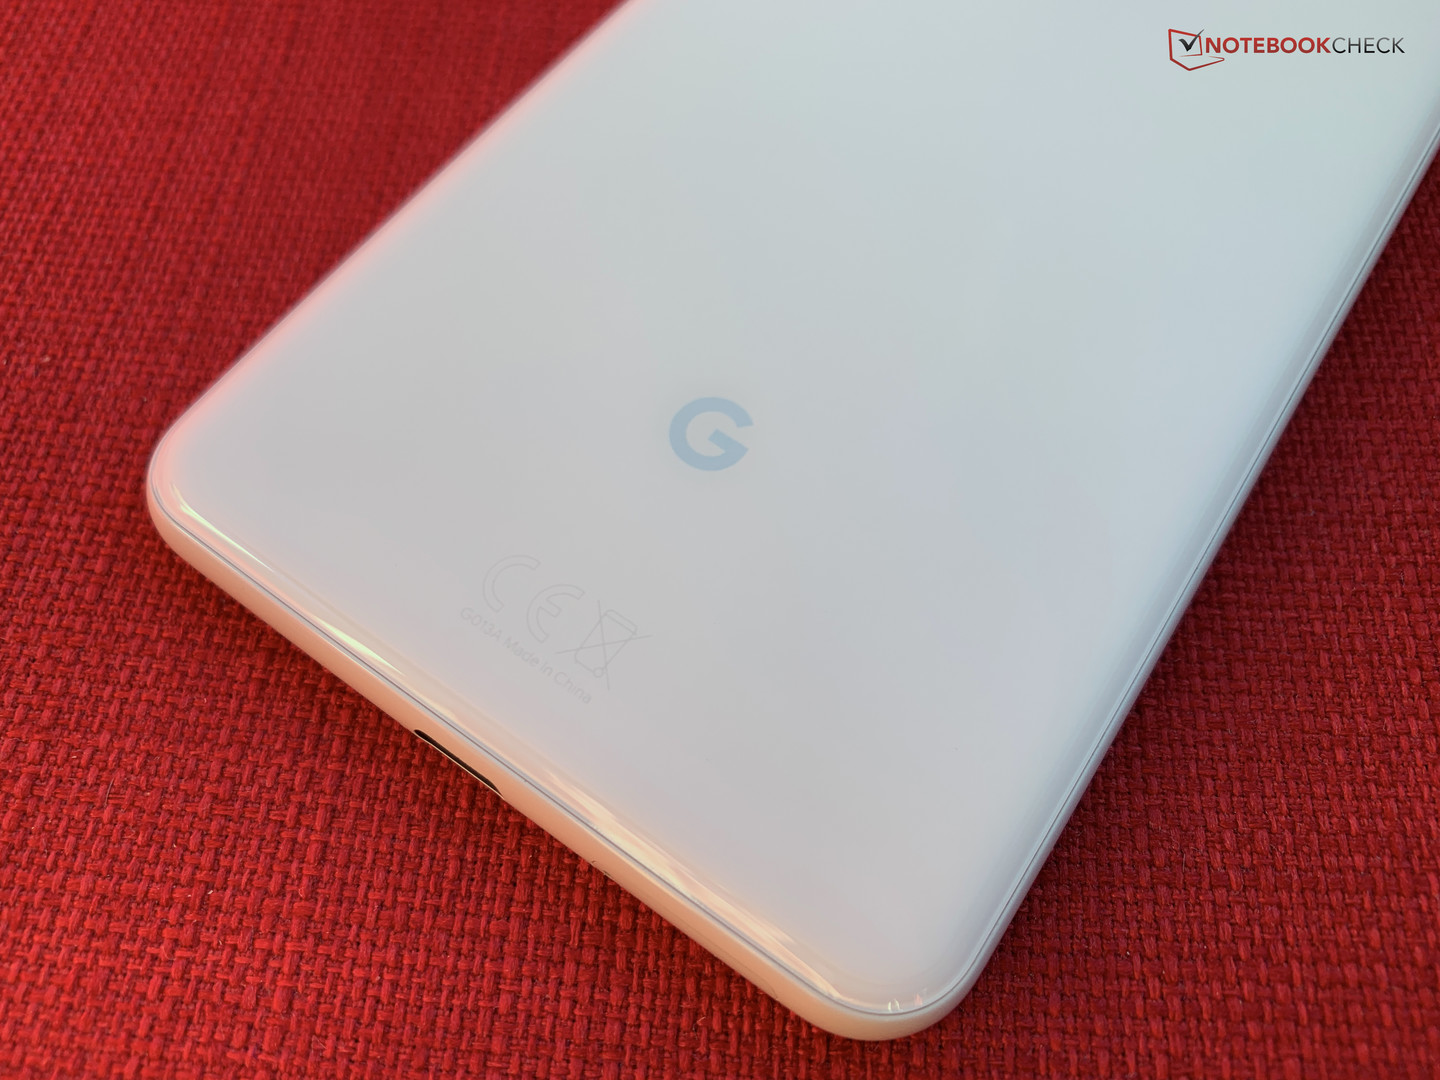 Google Pixel 3 XL Smartphone Review - NotebookCheck net Reviews